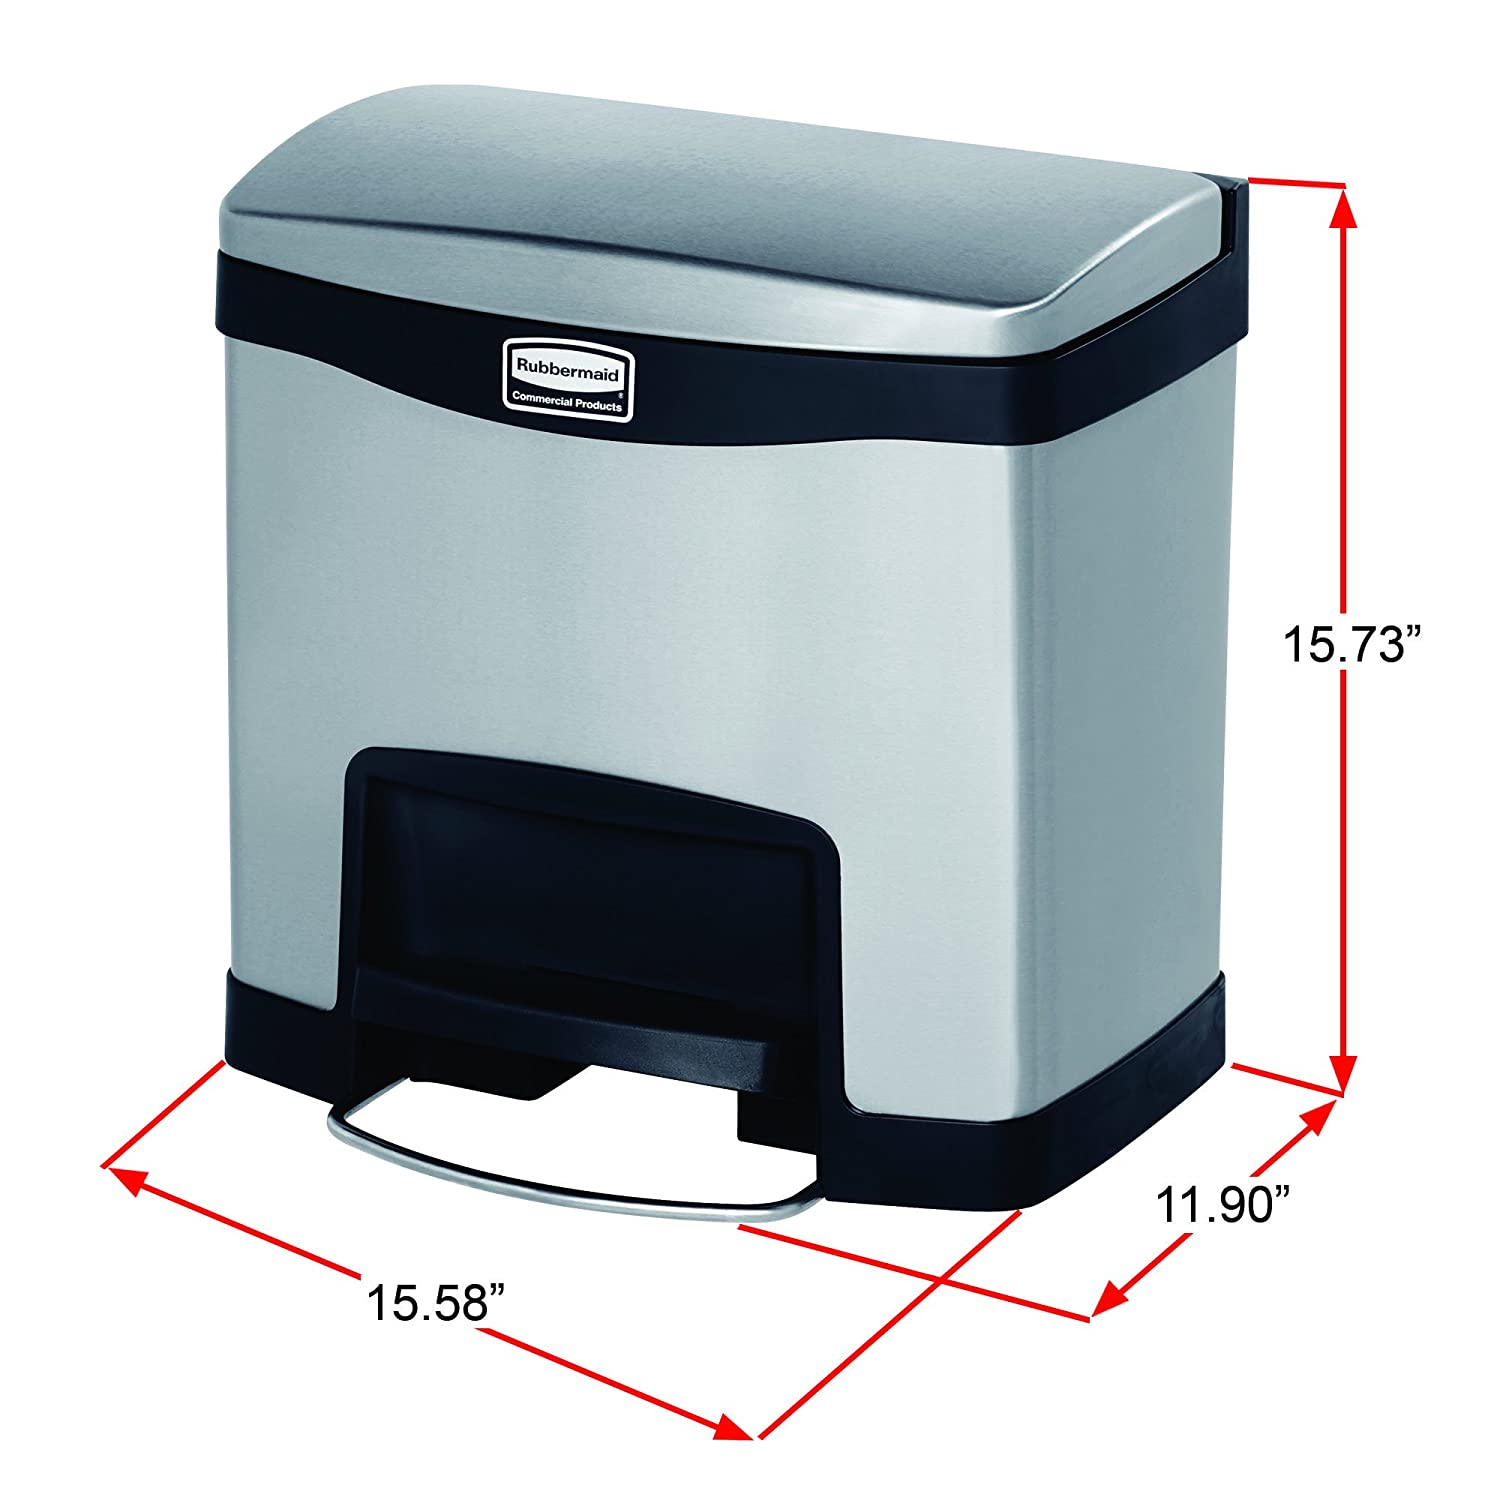 Amazon.com: Rubbermaid Commercial Slim Jim Stainless Steel Front ...